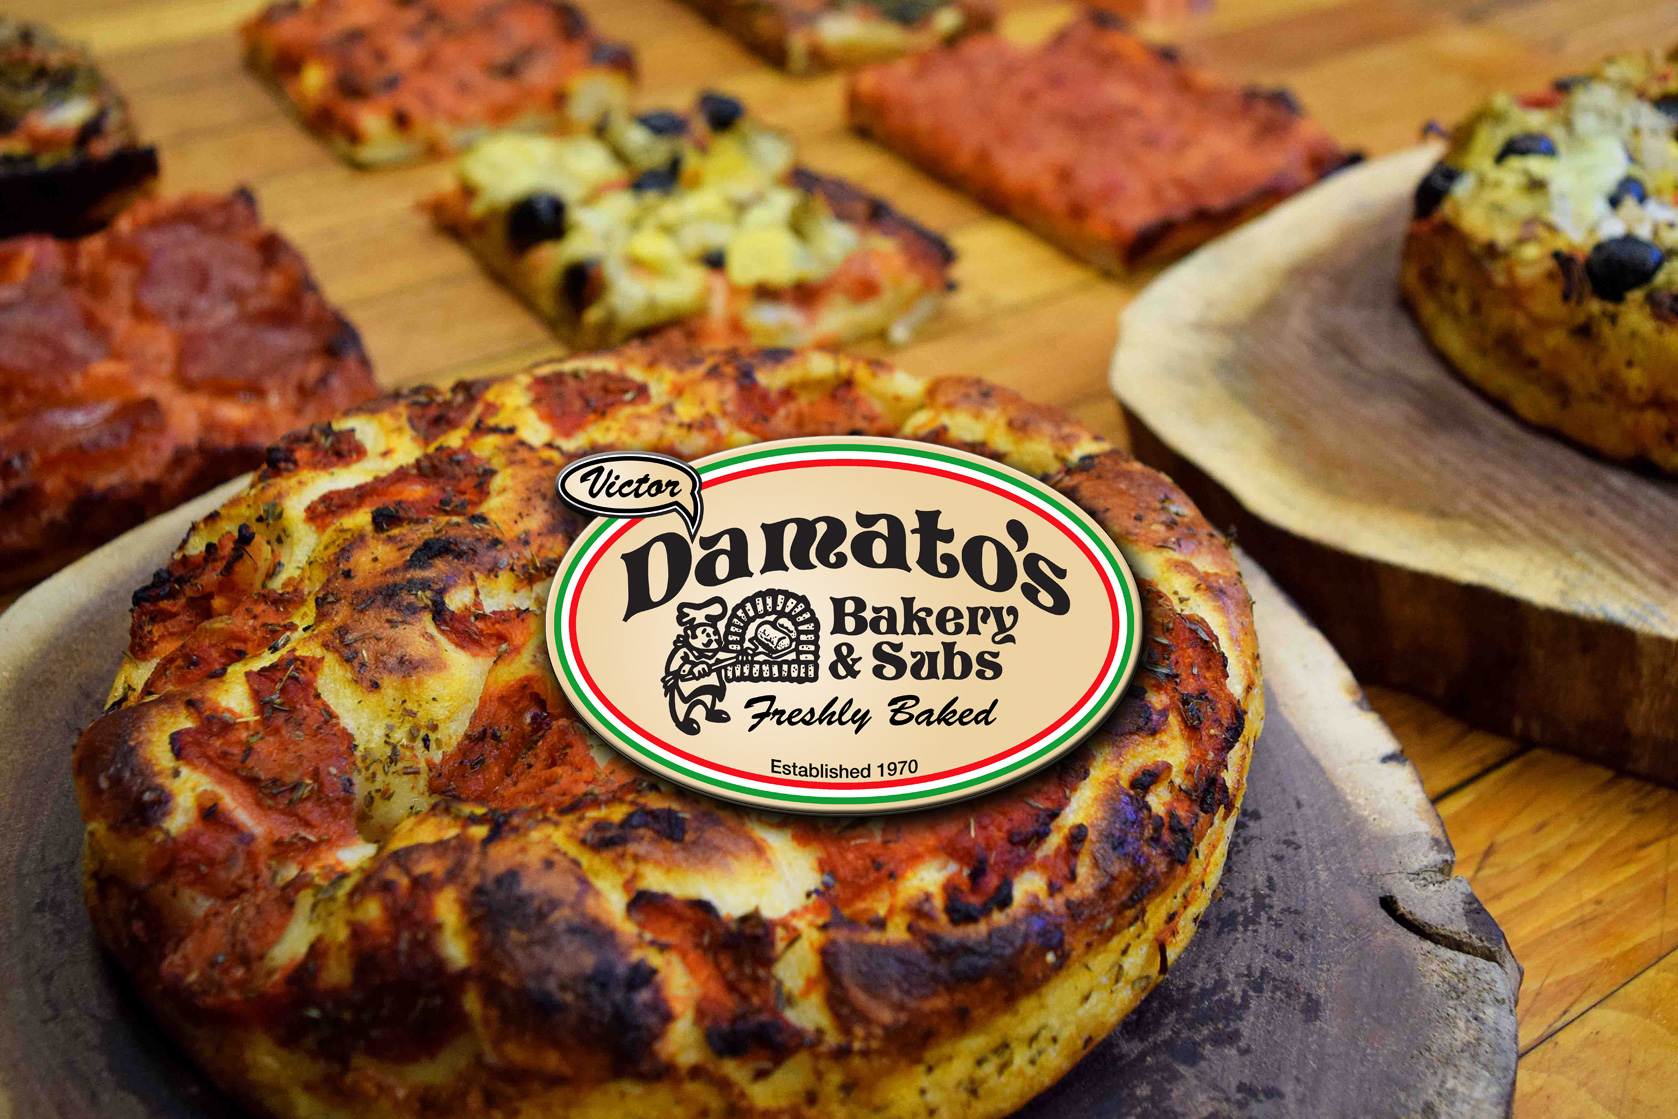 D'Amato's Chicago Pizza